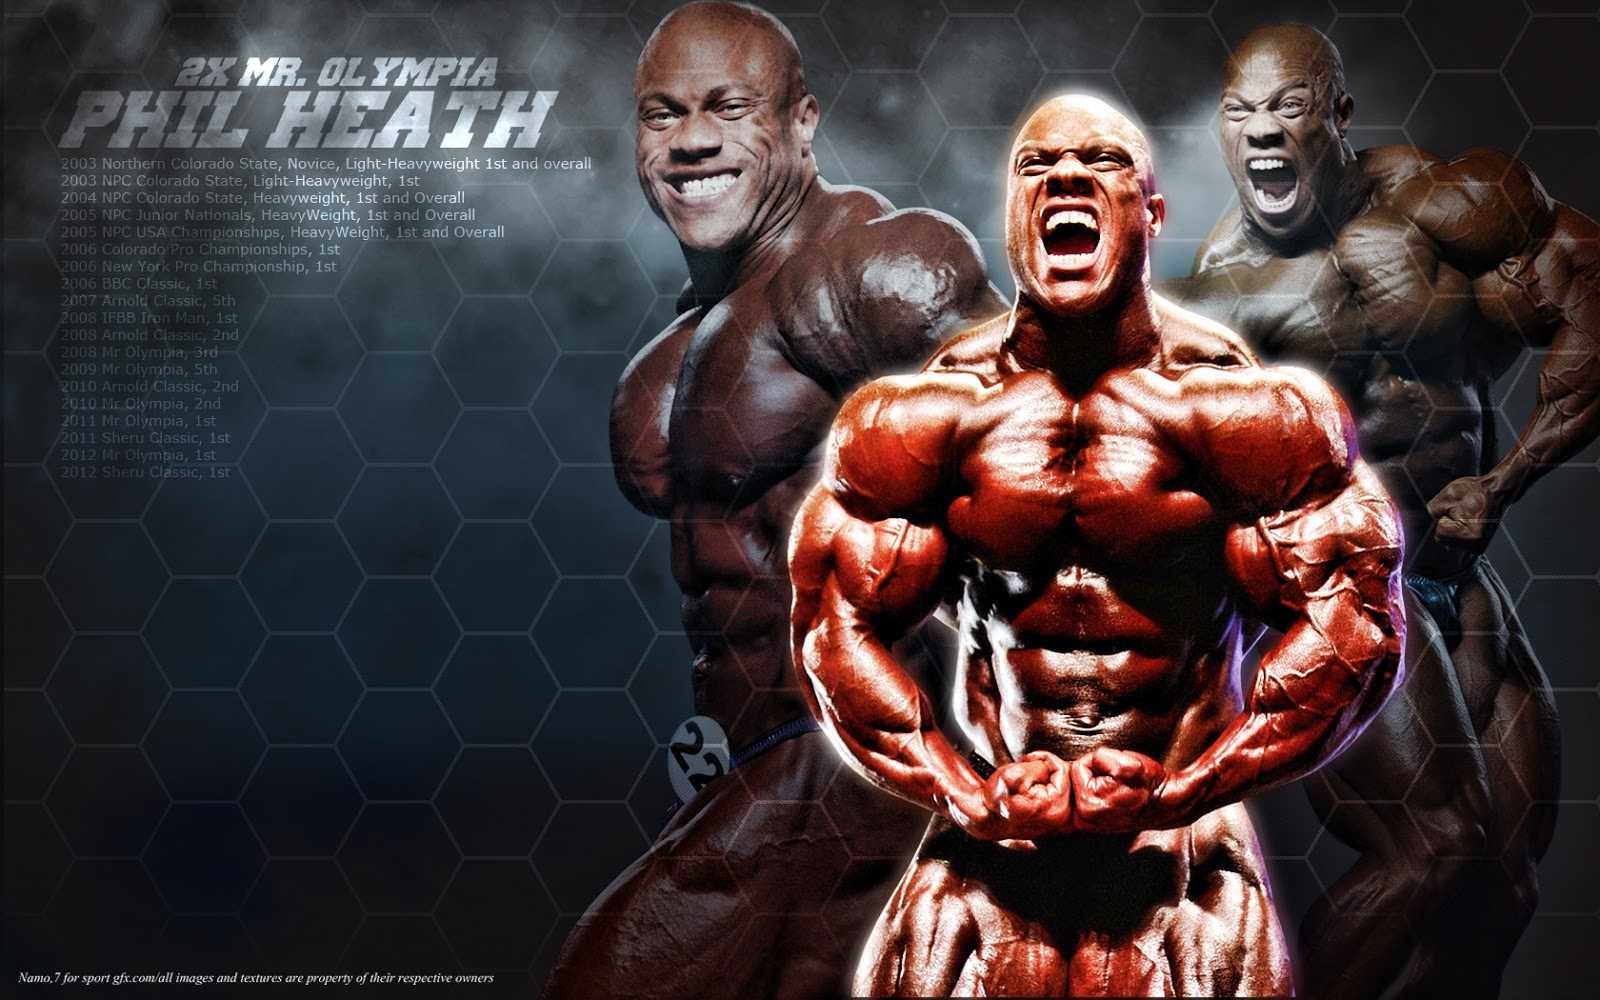 phil heath mr olympia hd wallpapers 2013 all about hd